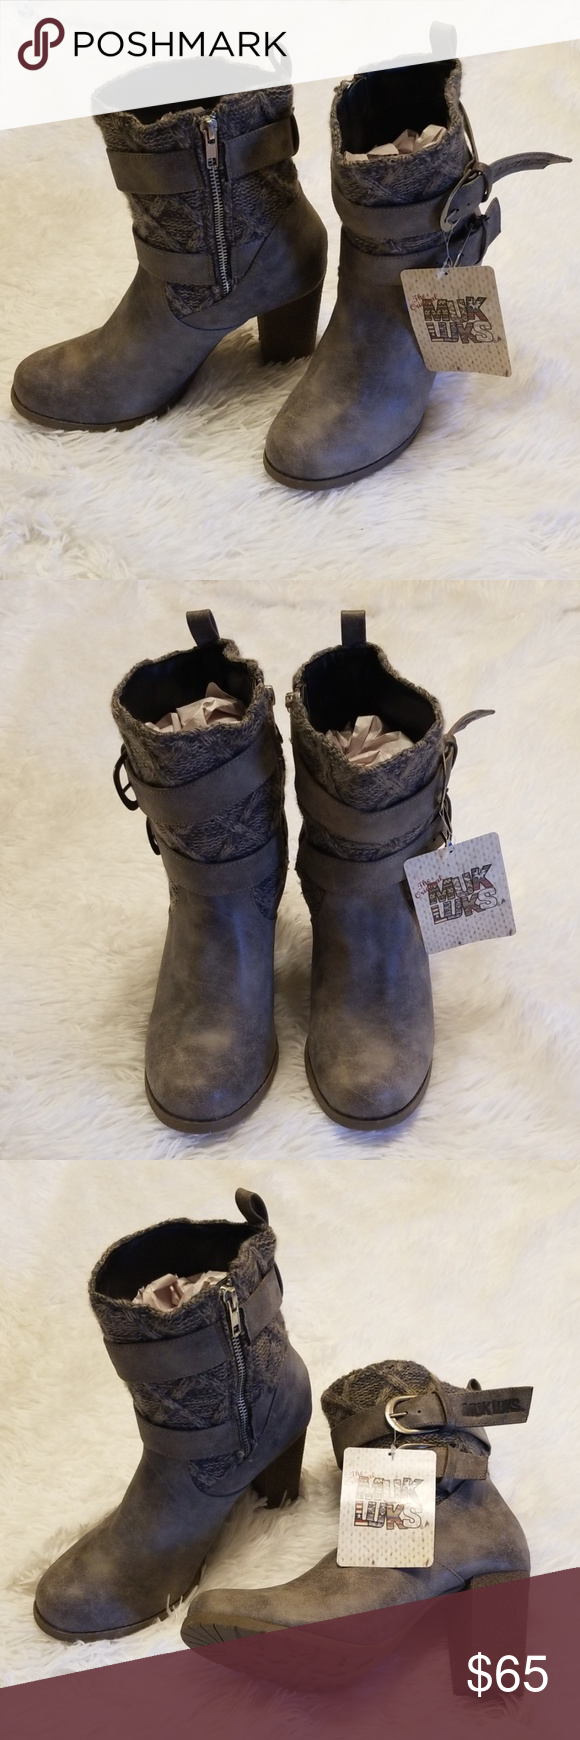 Muk Luk ankle boots NWT Muk Luk Katy ankle boots. This is your fall/ winter must have! Absolutely adorable. Pair it with a sweater and skinny jeans. Size 8.  Item H10 Shoes Ankle Boots & Booties #skinnyjeansandankleboots